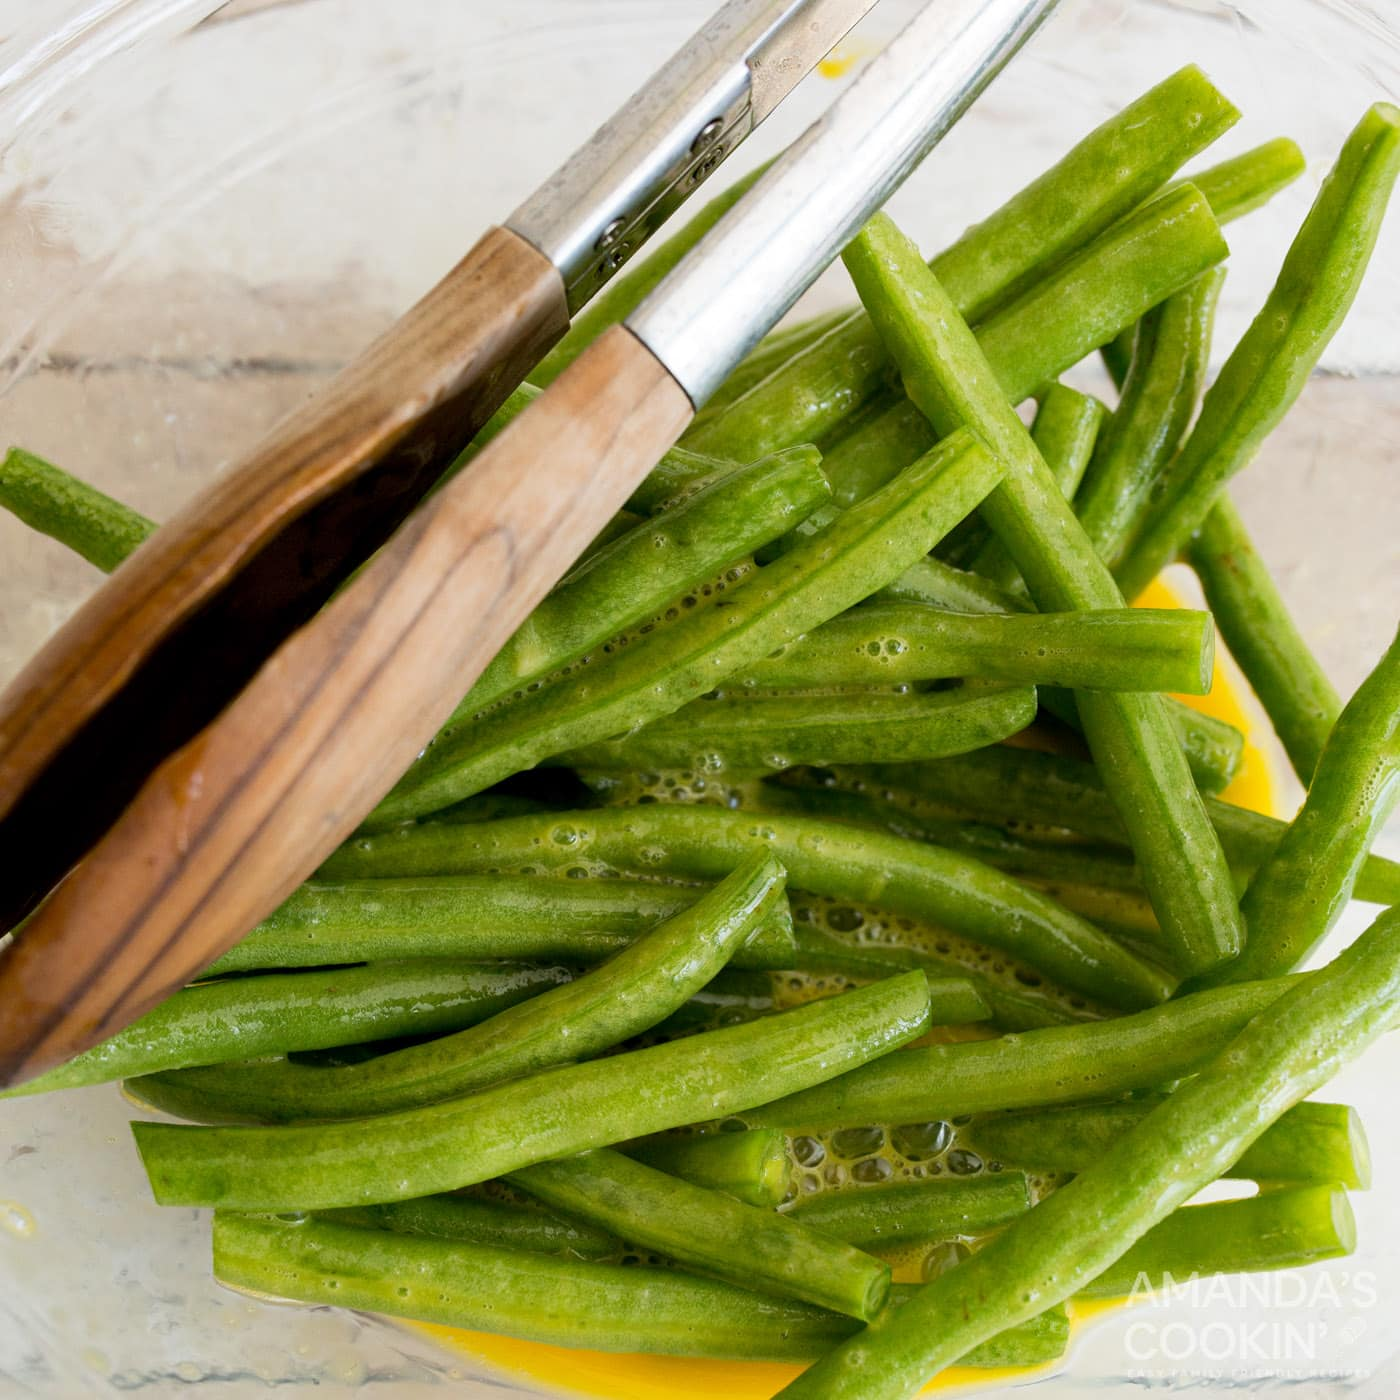 tossing green beans in a bowl of eggs